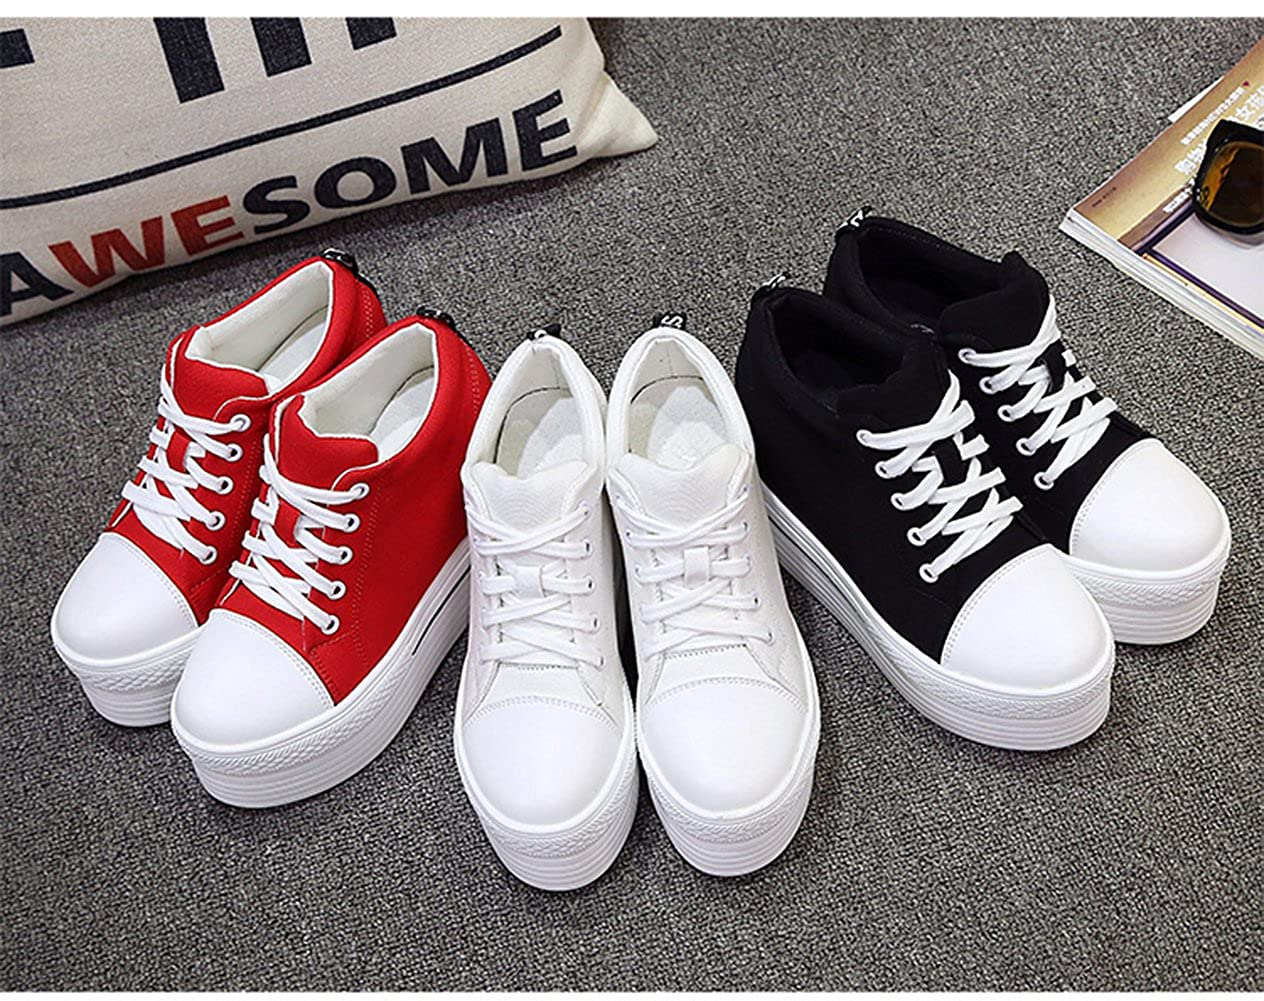 YC WELL Womens Wedge Platform Sneaker Flat Canvas Shoes Lace up Platform Sneakers shoes35